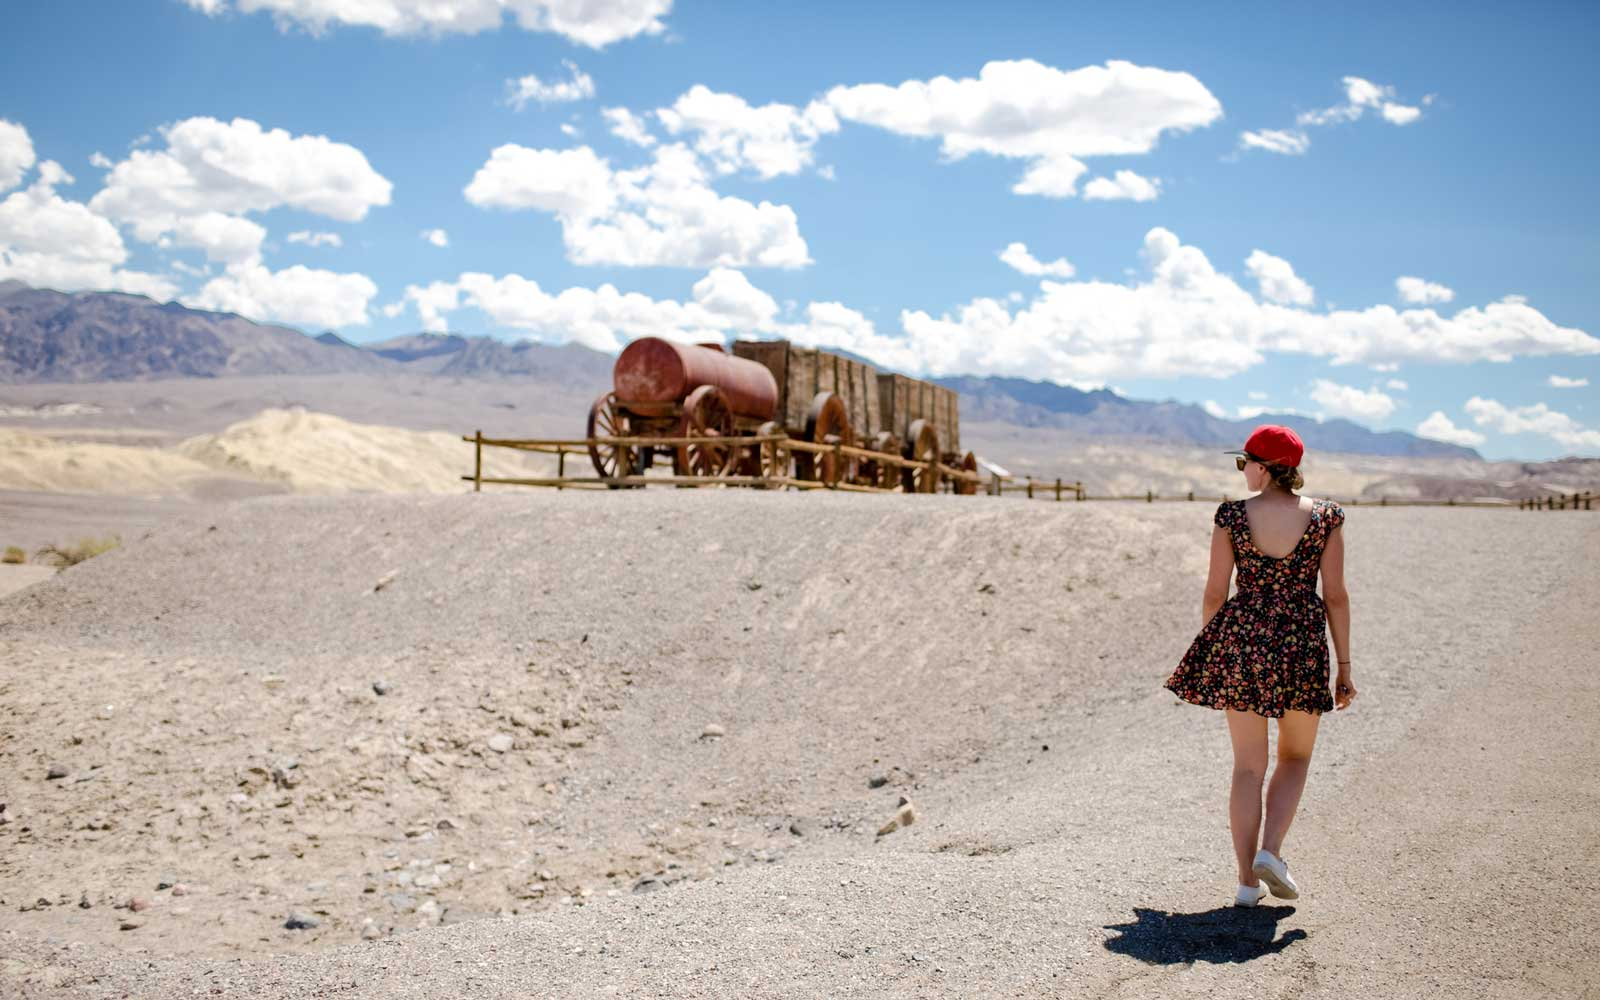 Death Valley and the Furnace Creek area